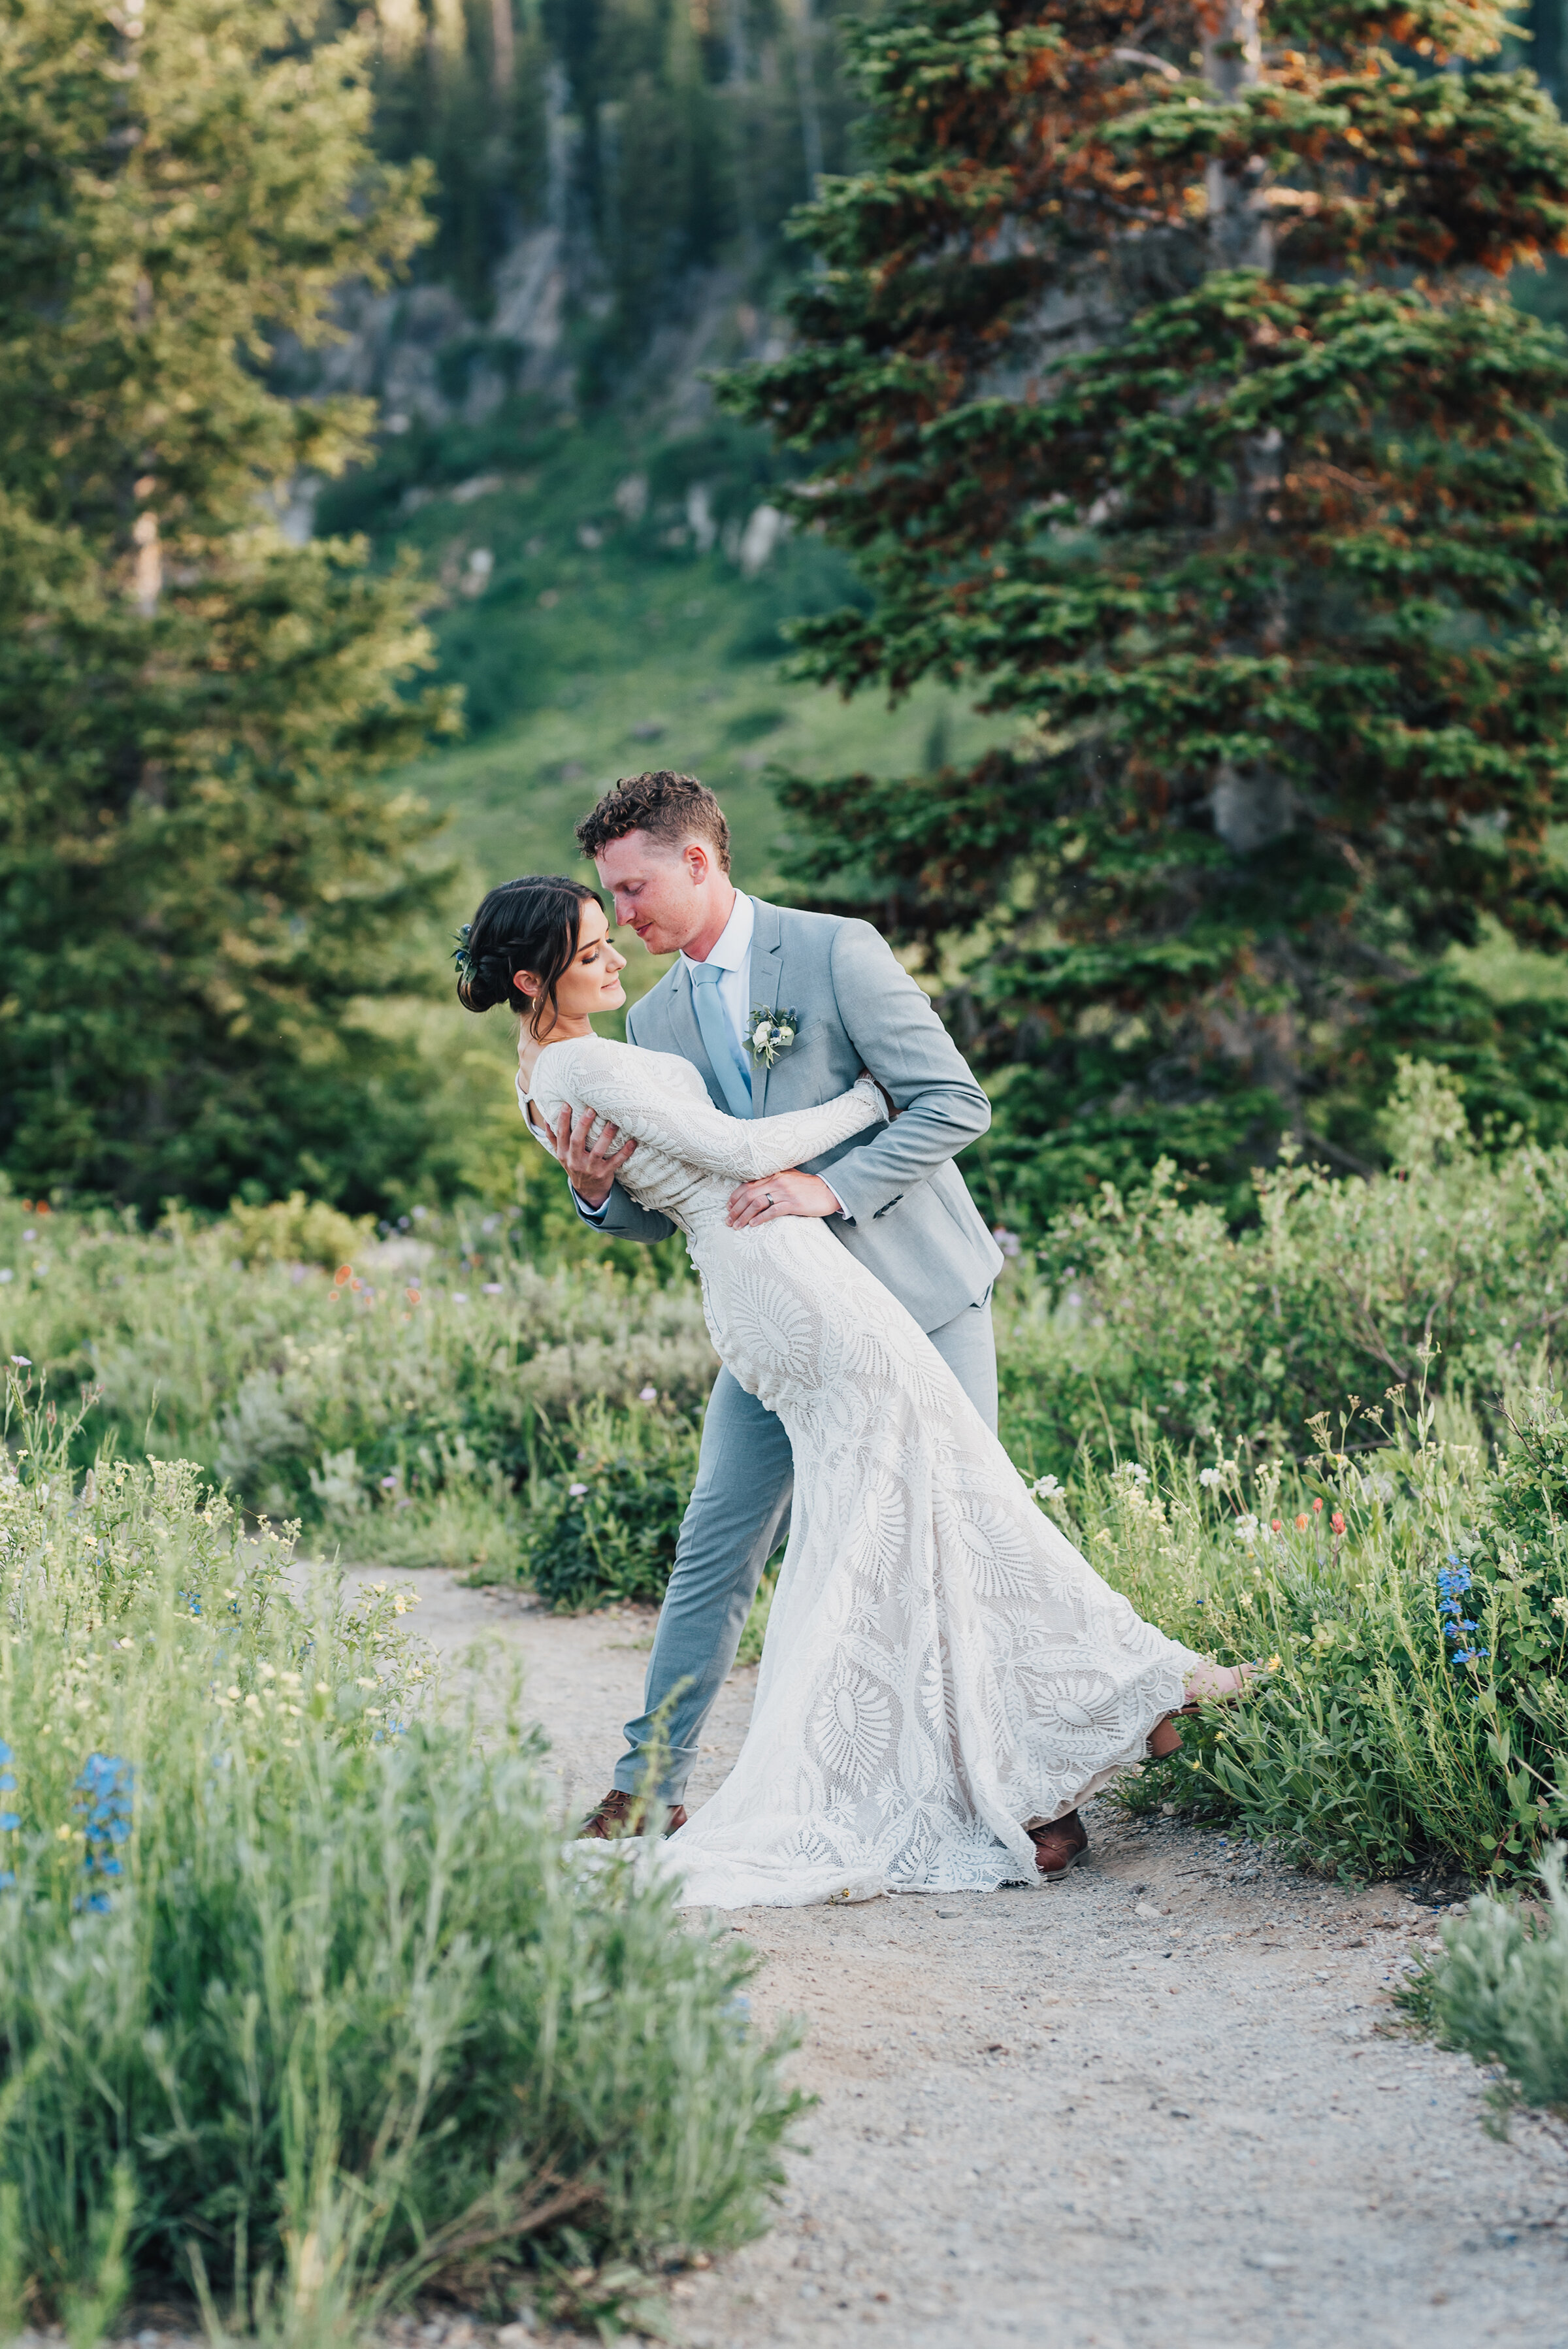 Dreamy formals surrounded by pine trees and wild flowers up Logan canyon. Kristi Alyse photography Logan Utah wedding photographer forest nature dreamy formals Logan canyon Tony Grove scenic bridals Northern Utah photographer Utah brides bride and groom Cache Valley #kristialysephotography #loganutahphotographer #tonygrove #logancanyon #utahweddingphotographer #bridals #formals #wildflowers #northernutah #utahbrides